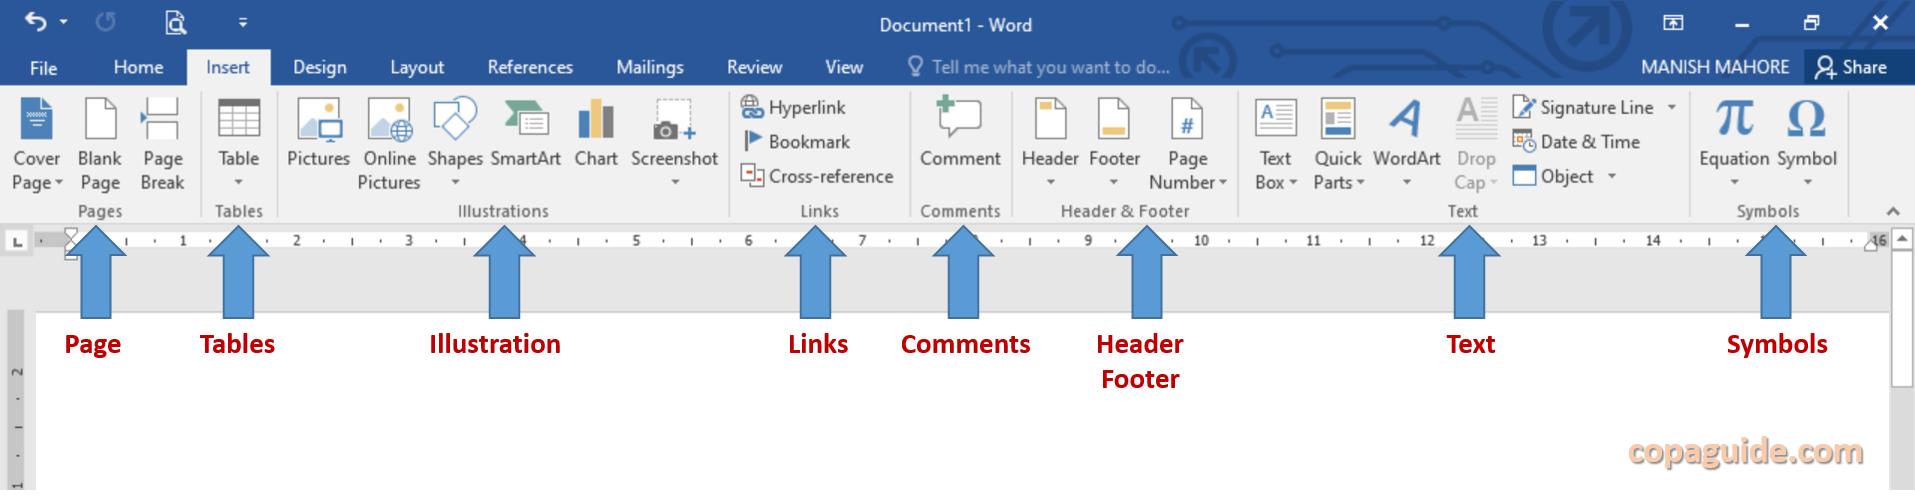 MS Word Insert Tab Commands